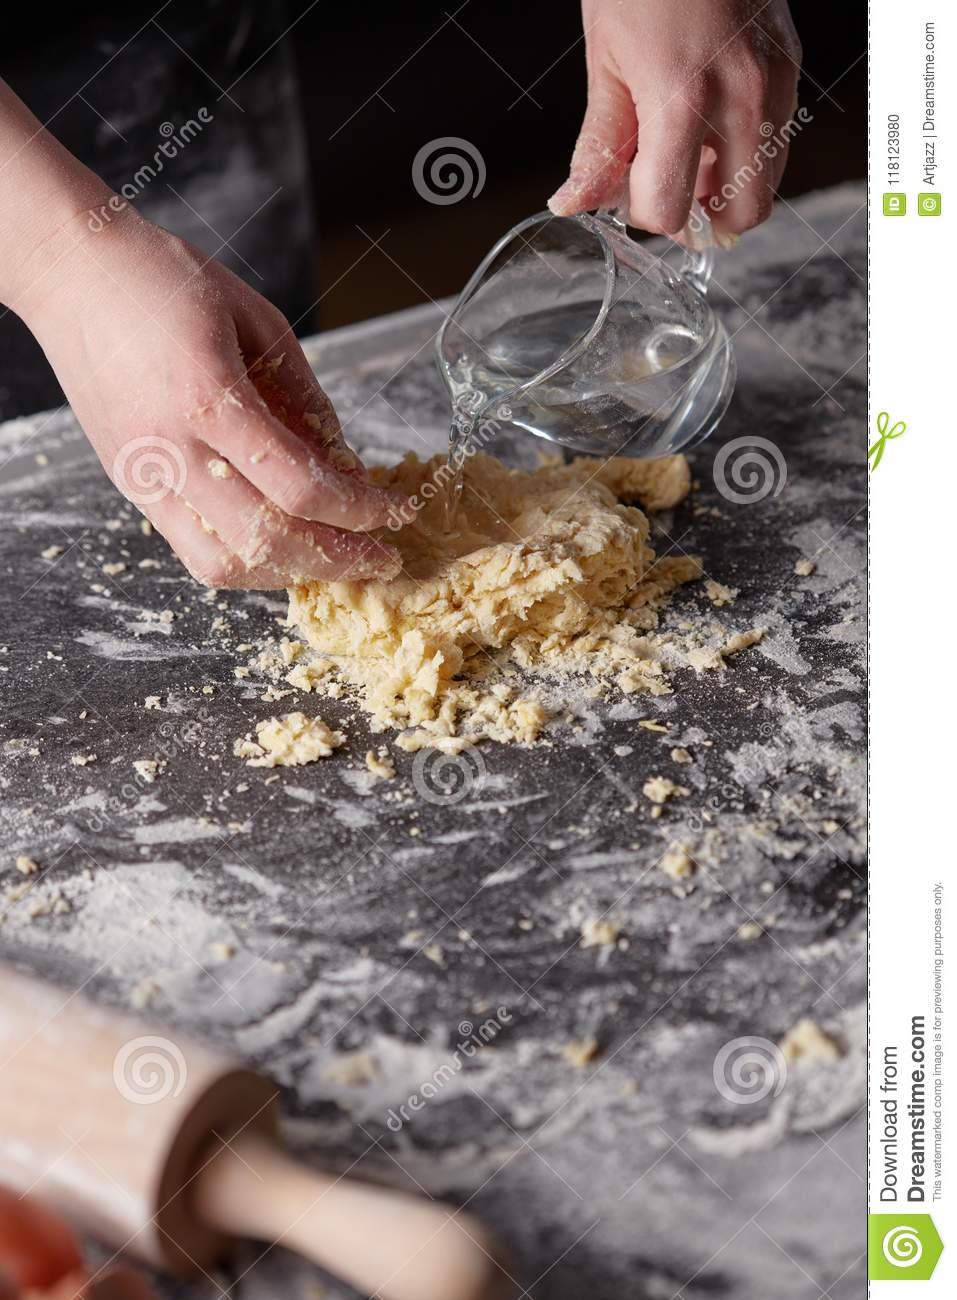 Download On A Kitchen Table The Women`s Hands Kneads The Dough. Step-by-step Preparation Of The Dough Stock Photo - Image of baker, black: 118123980